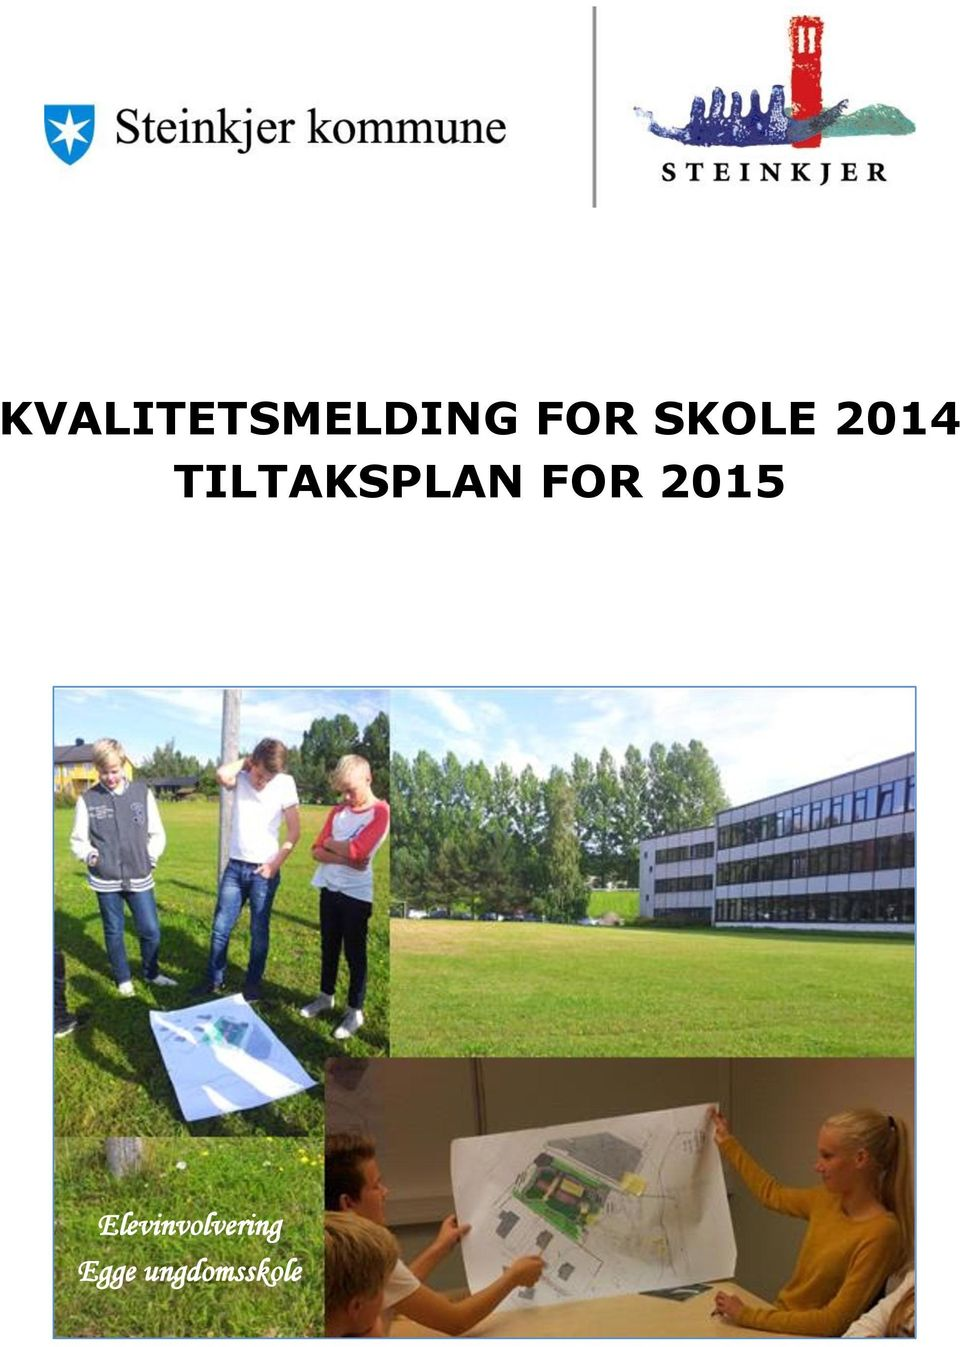 TILTAKSPLAN FOR 2015